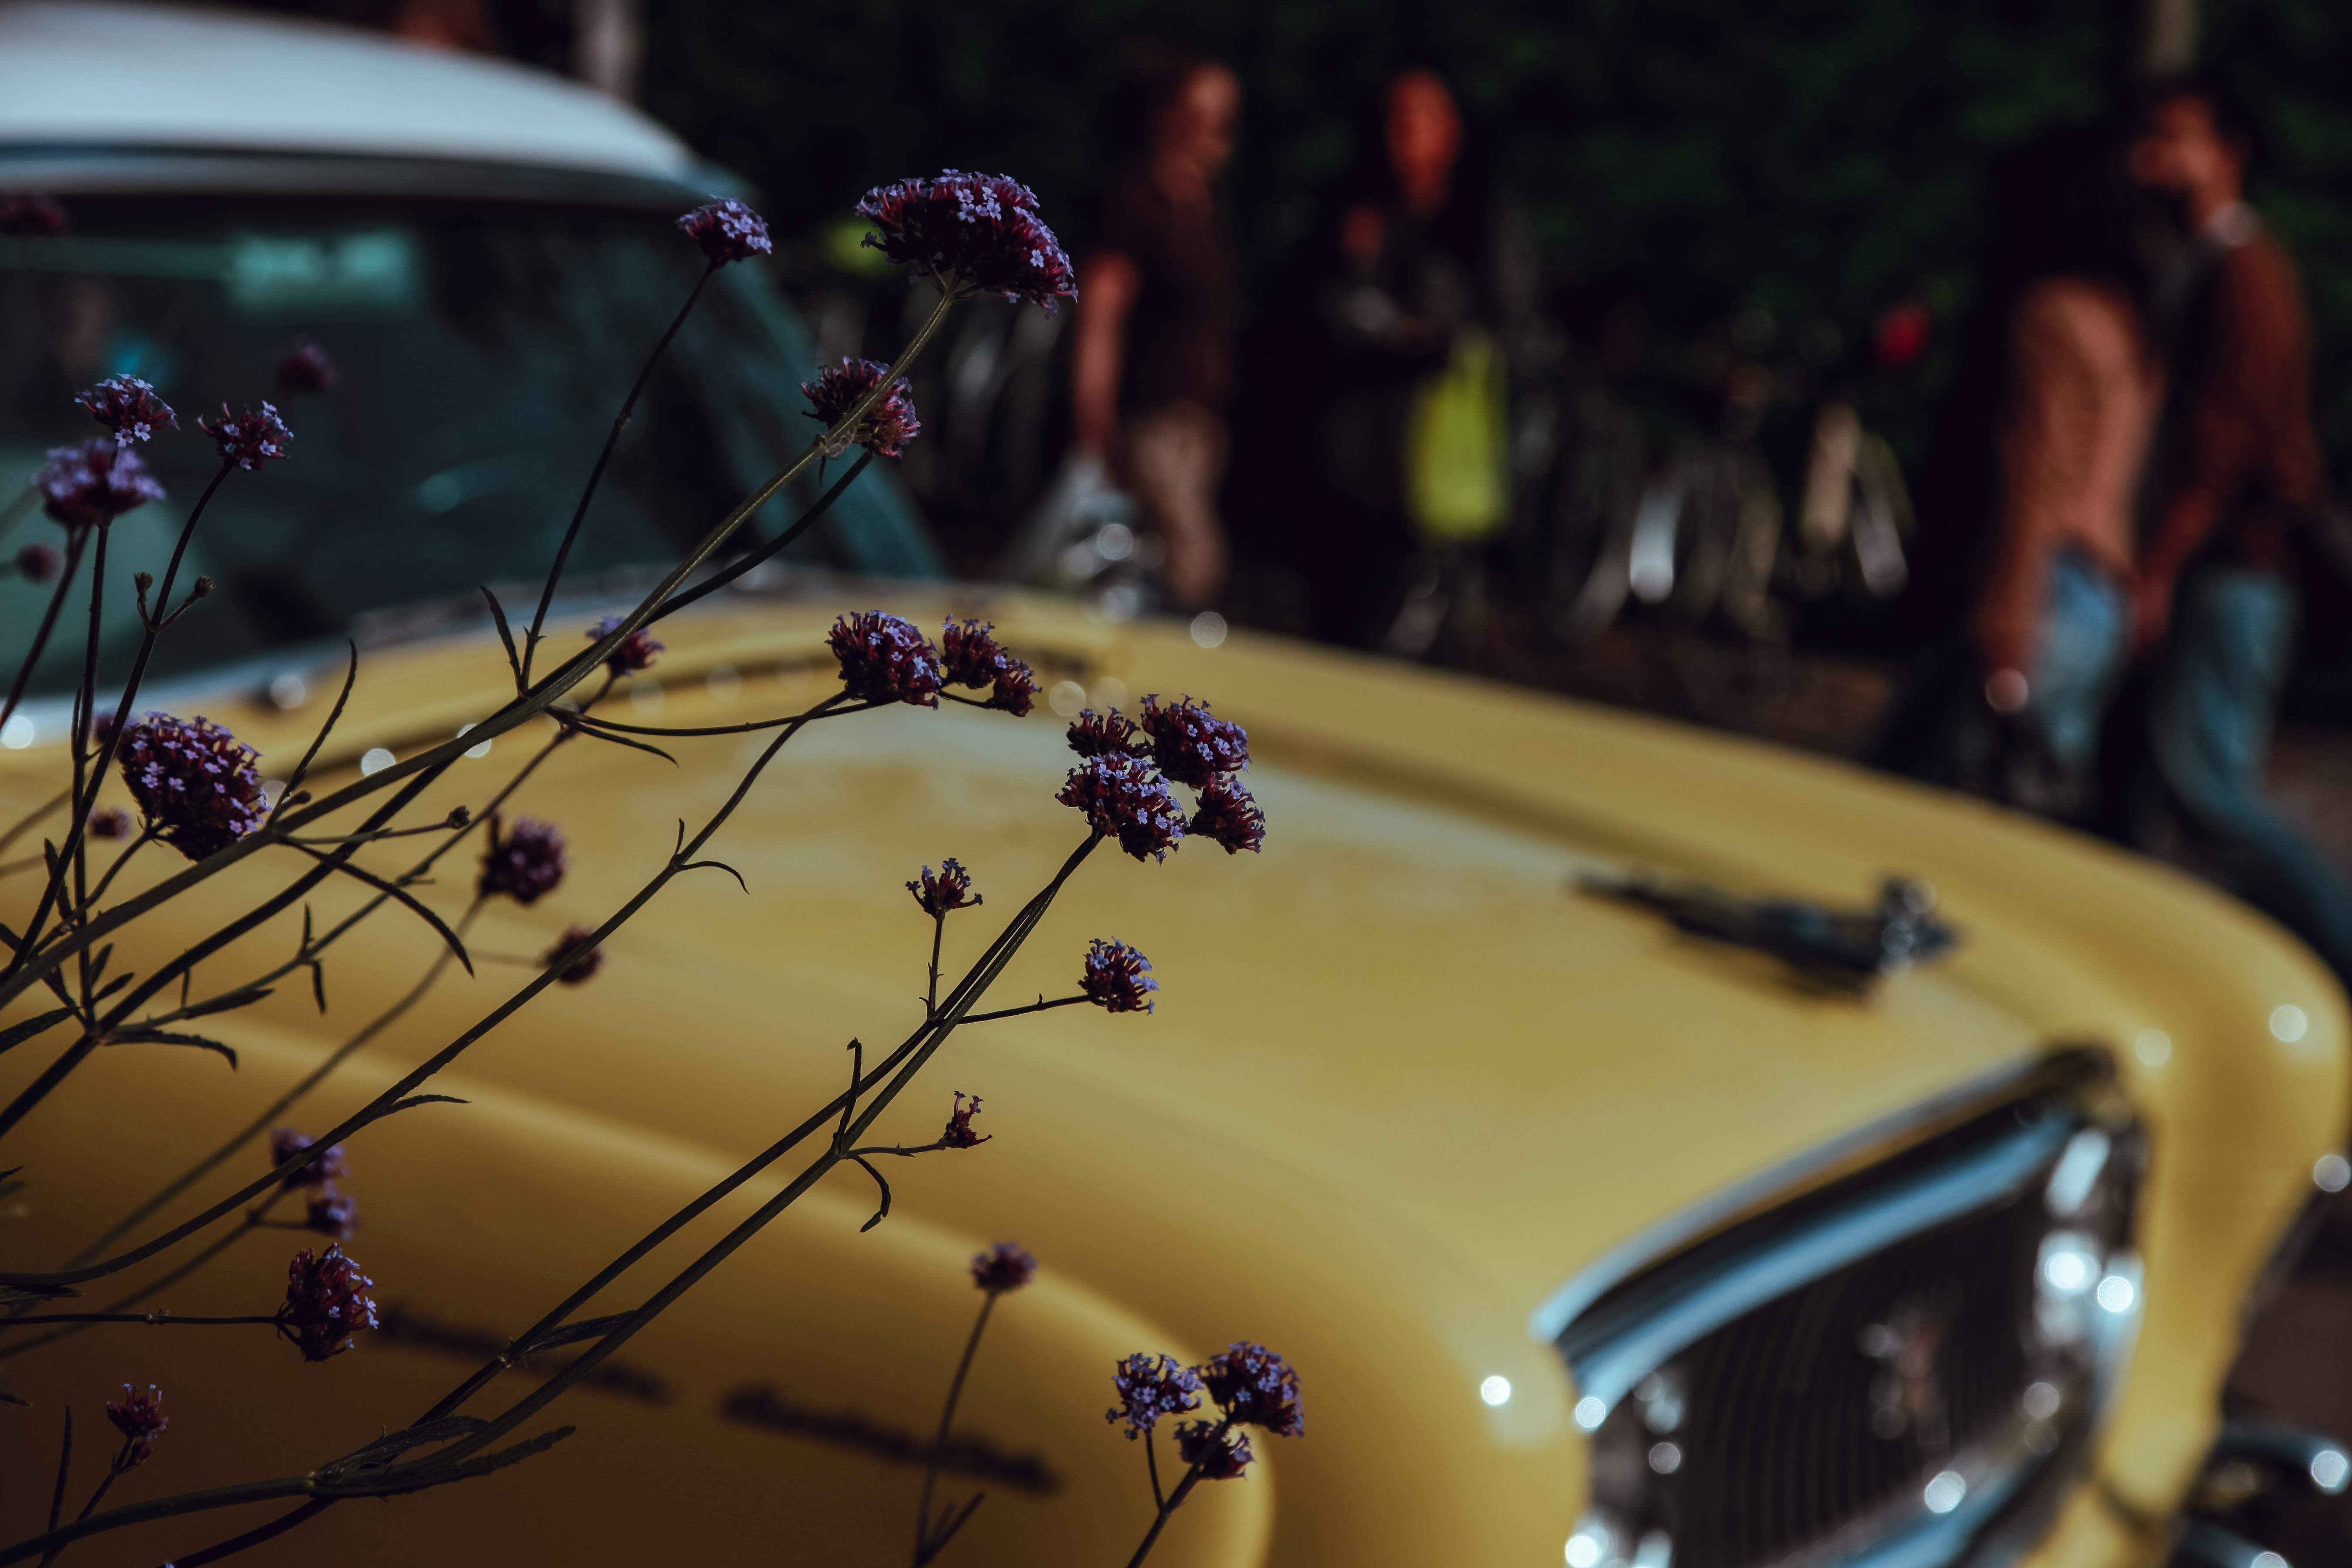 Out-of-focus shot of a vintage yellow car with flowers in front of it.